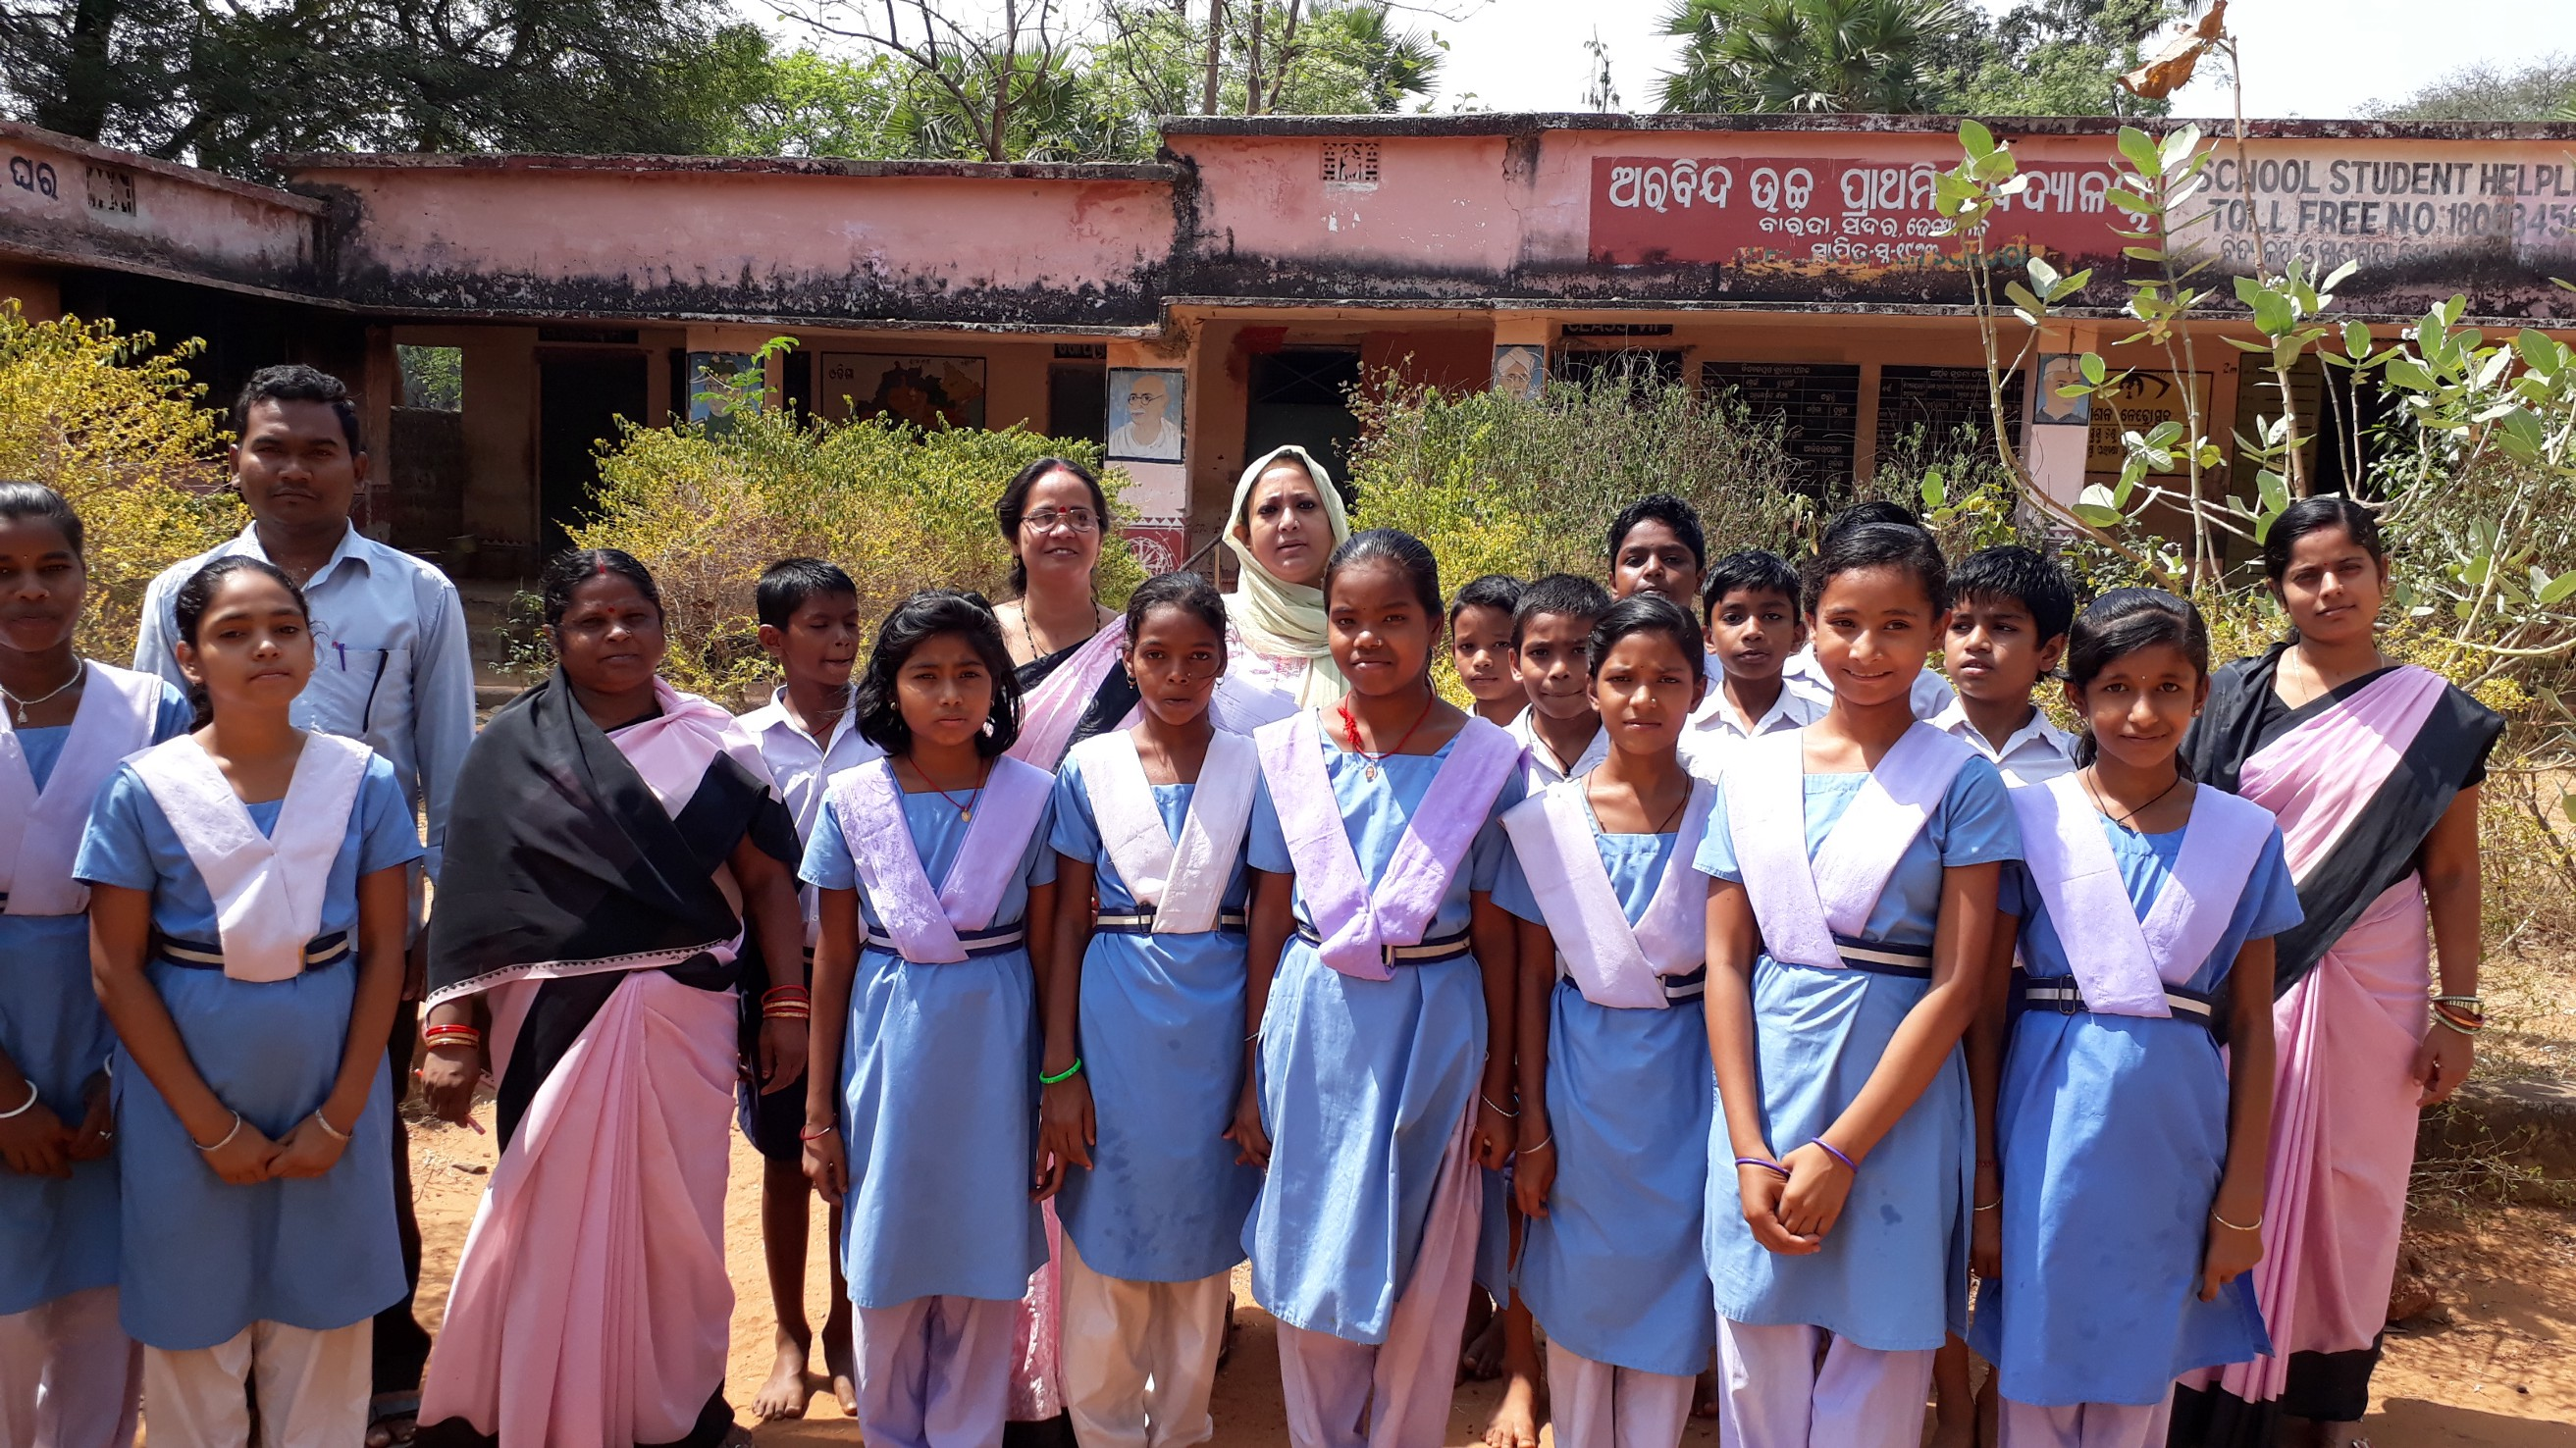 Has the Education initiatives under CSR of the Corporates